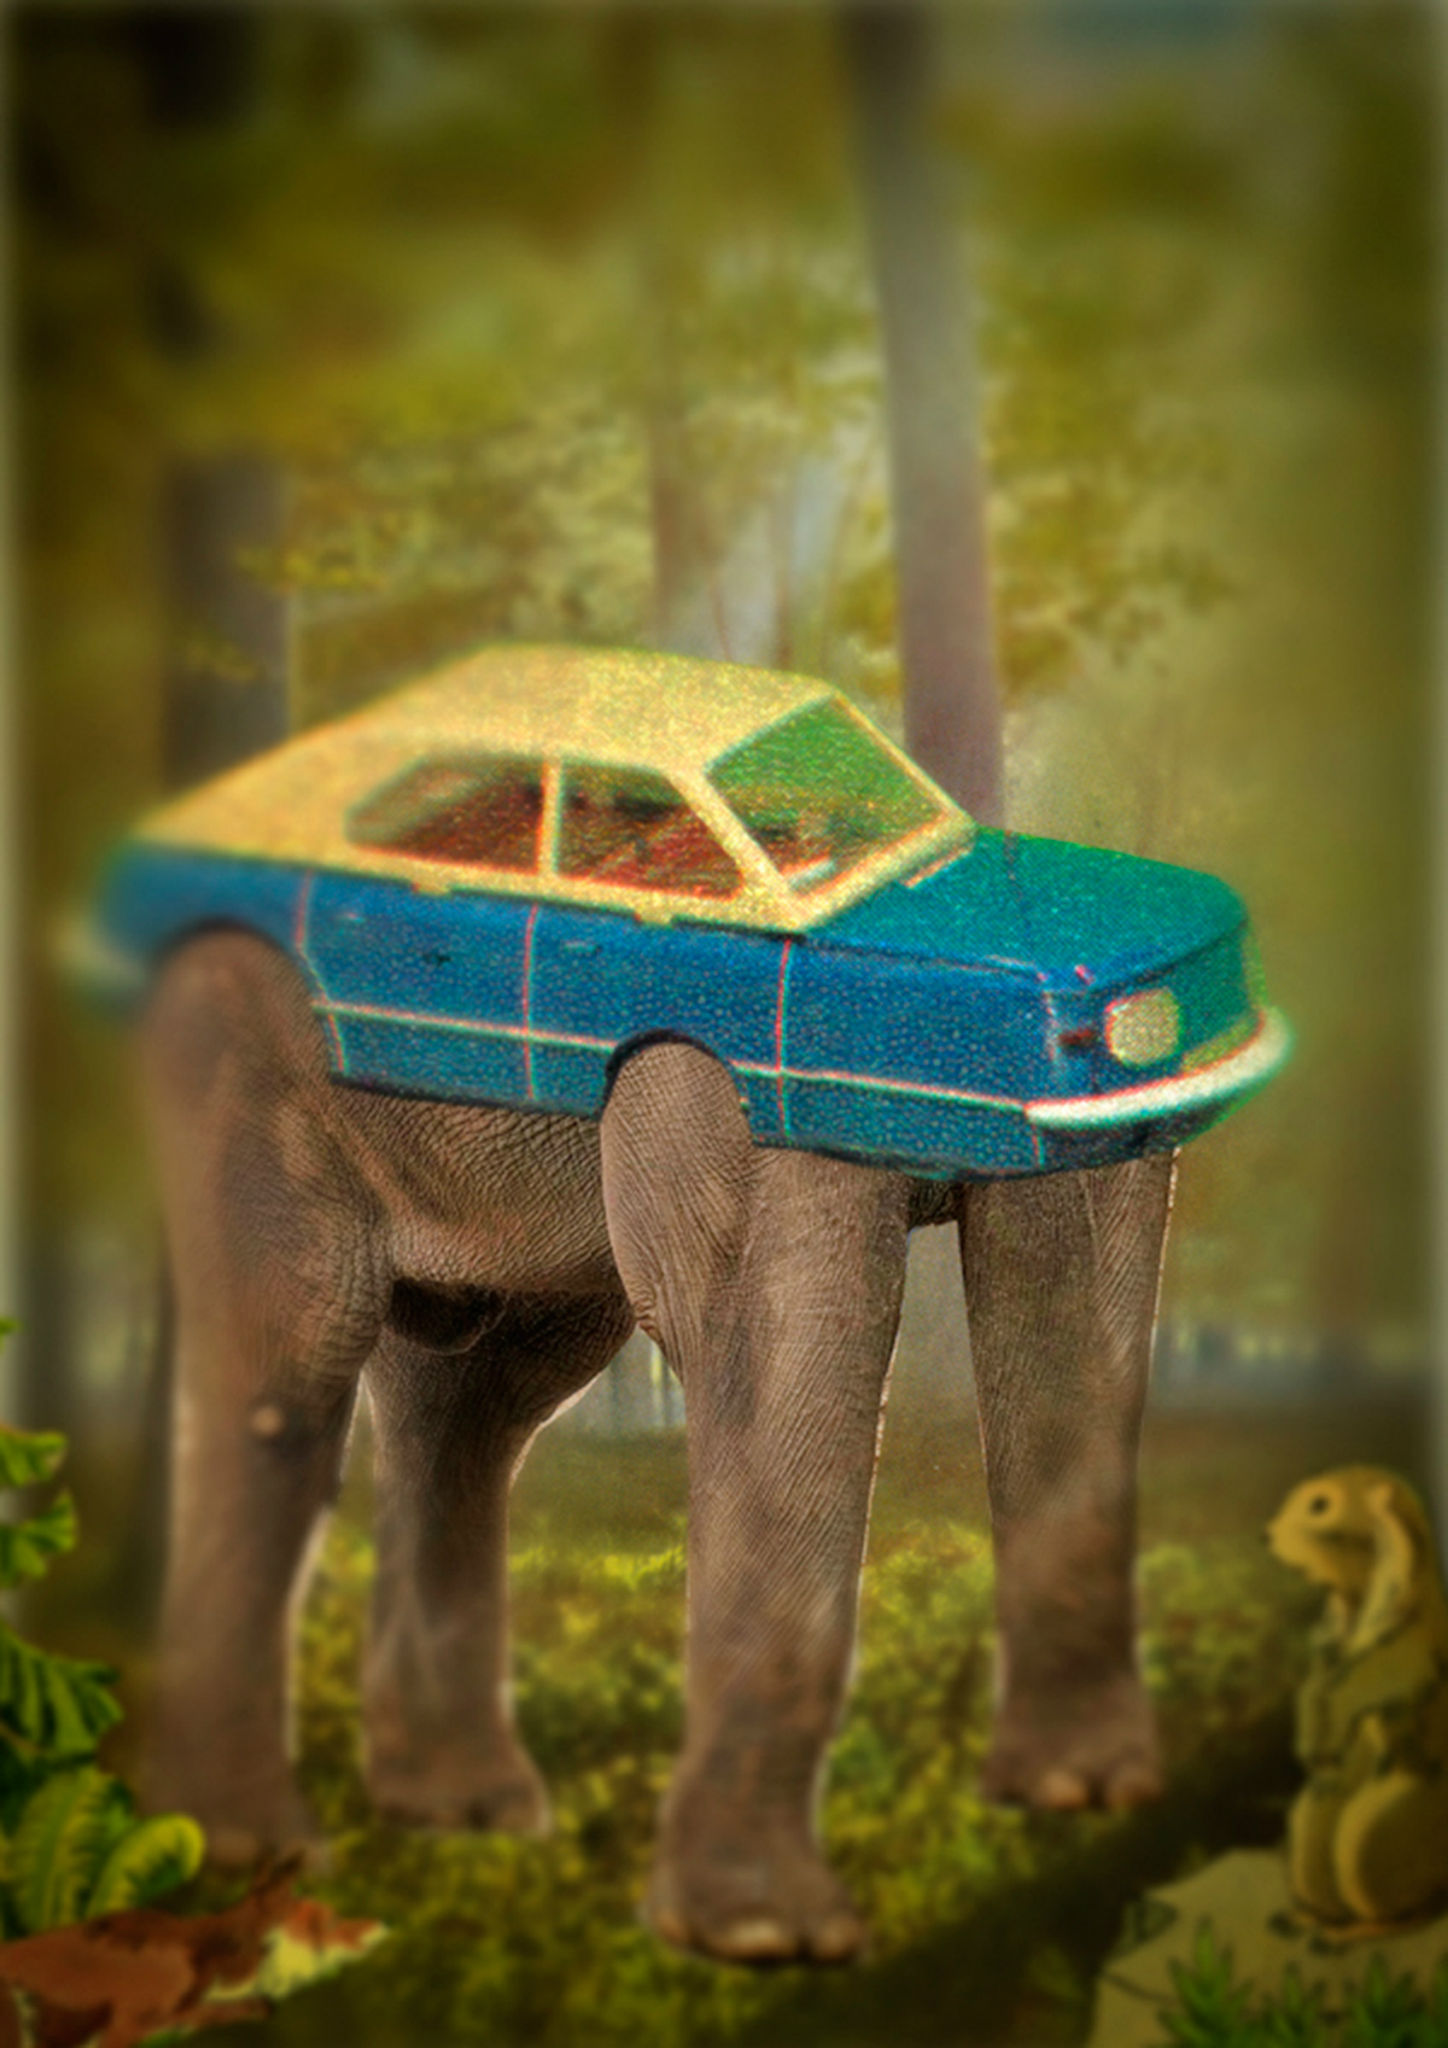 Kleon Medugorac Ecological Car